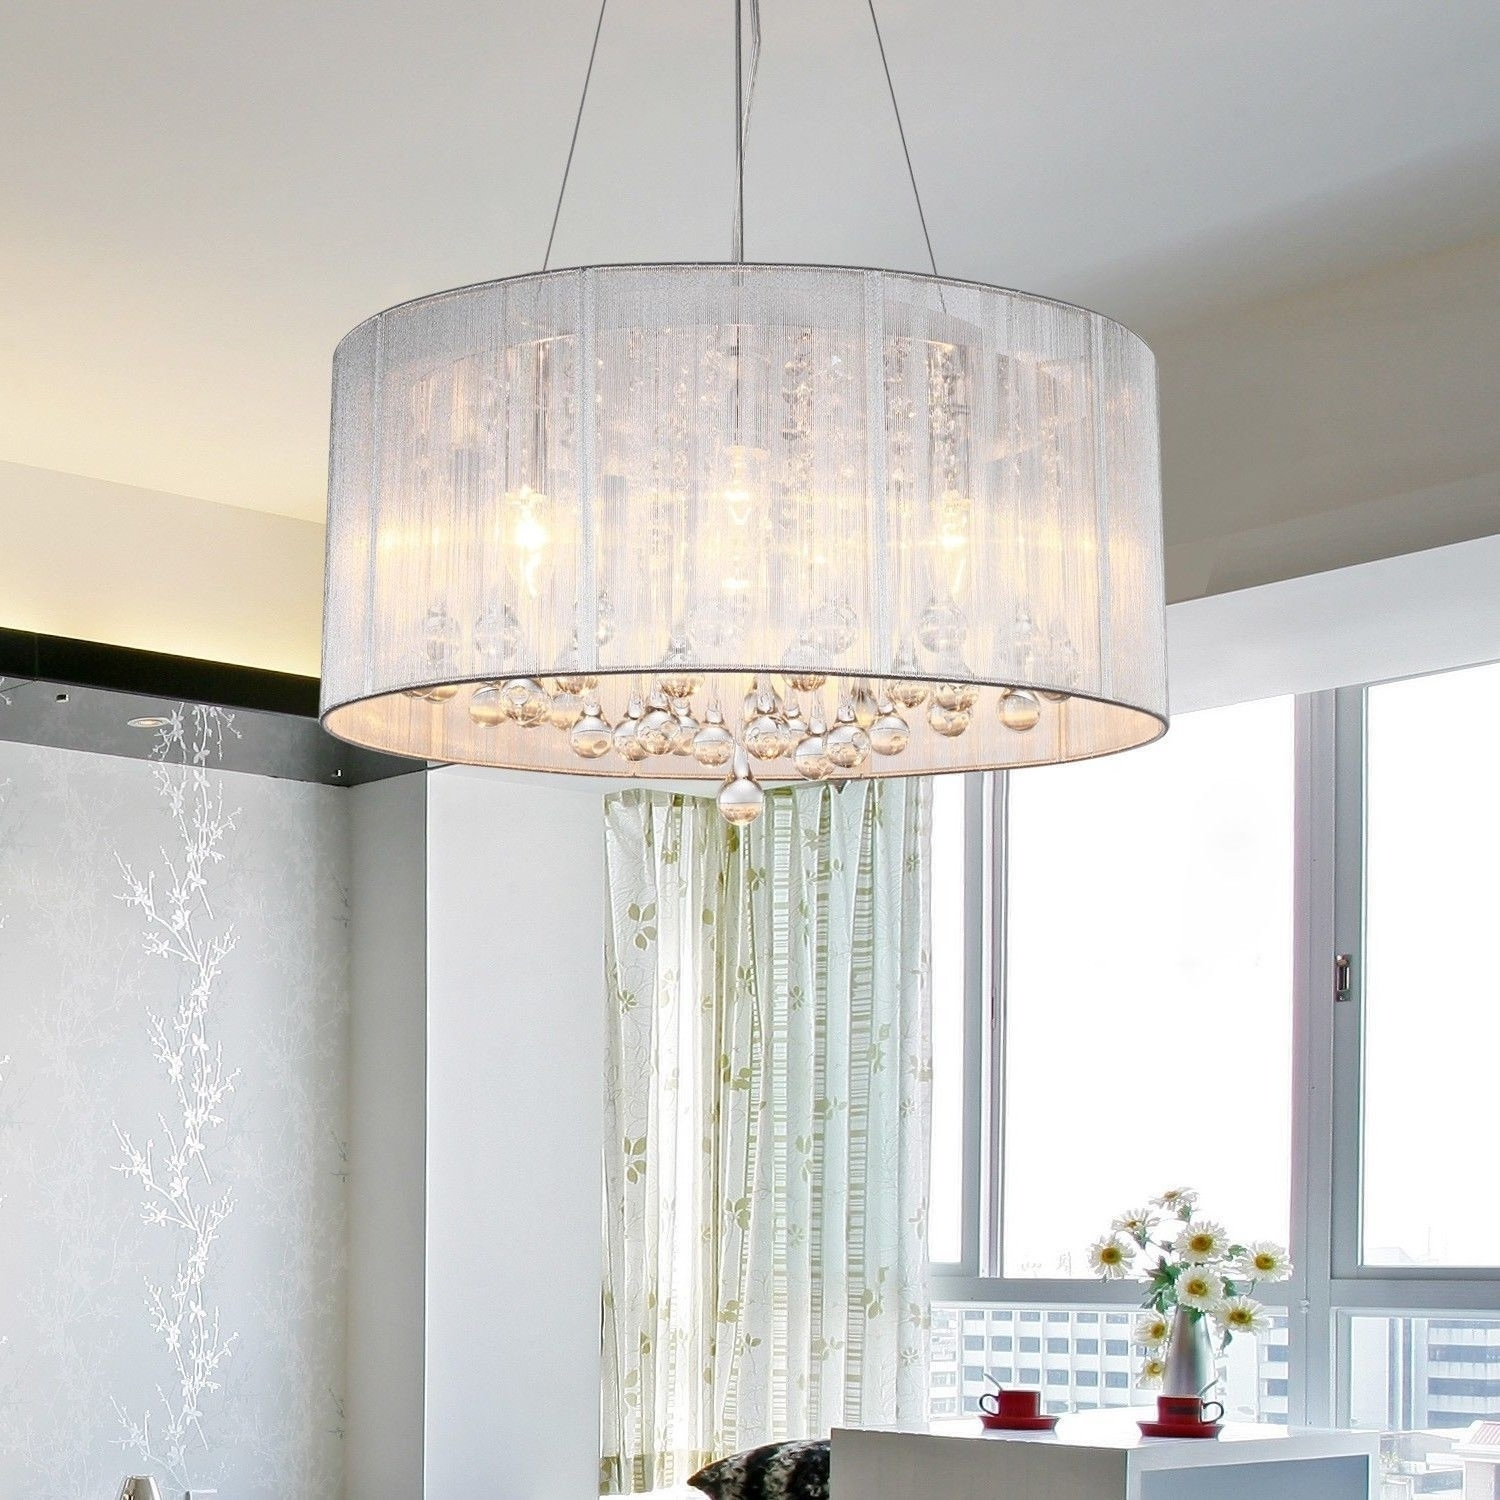 Lampshades For Chandeliers In Widely Used Lamp Shades For Chandeliers Small : Lamp World (View 13 of 15)